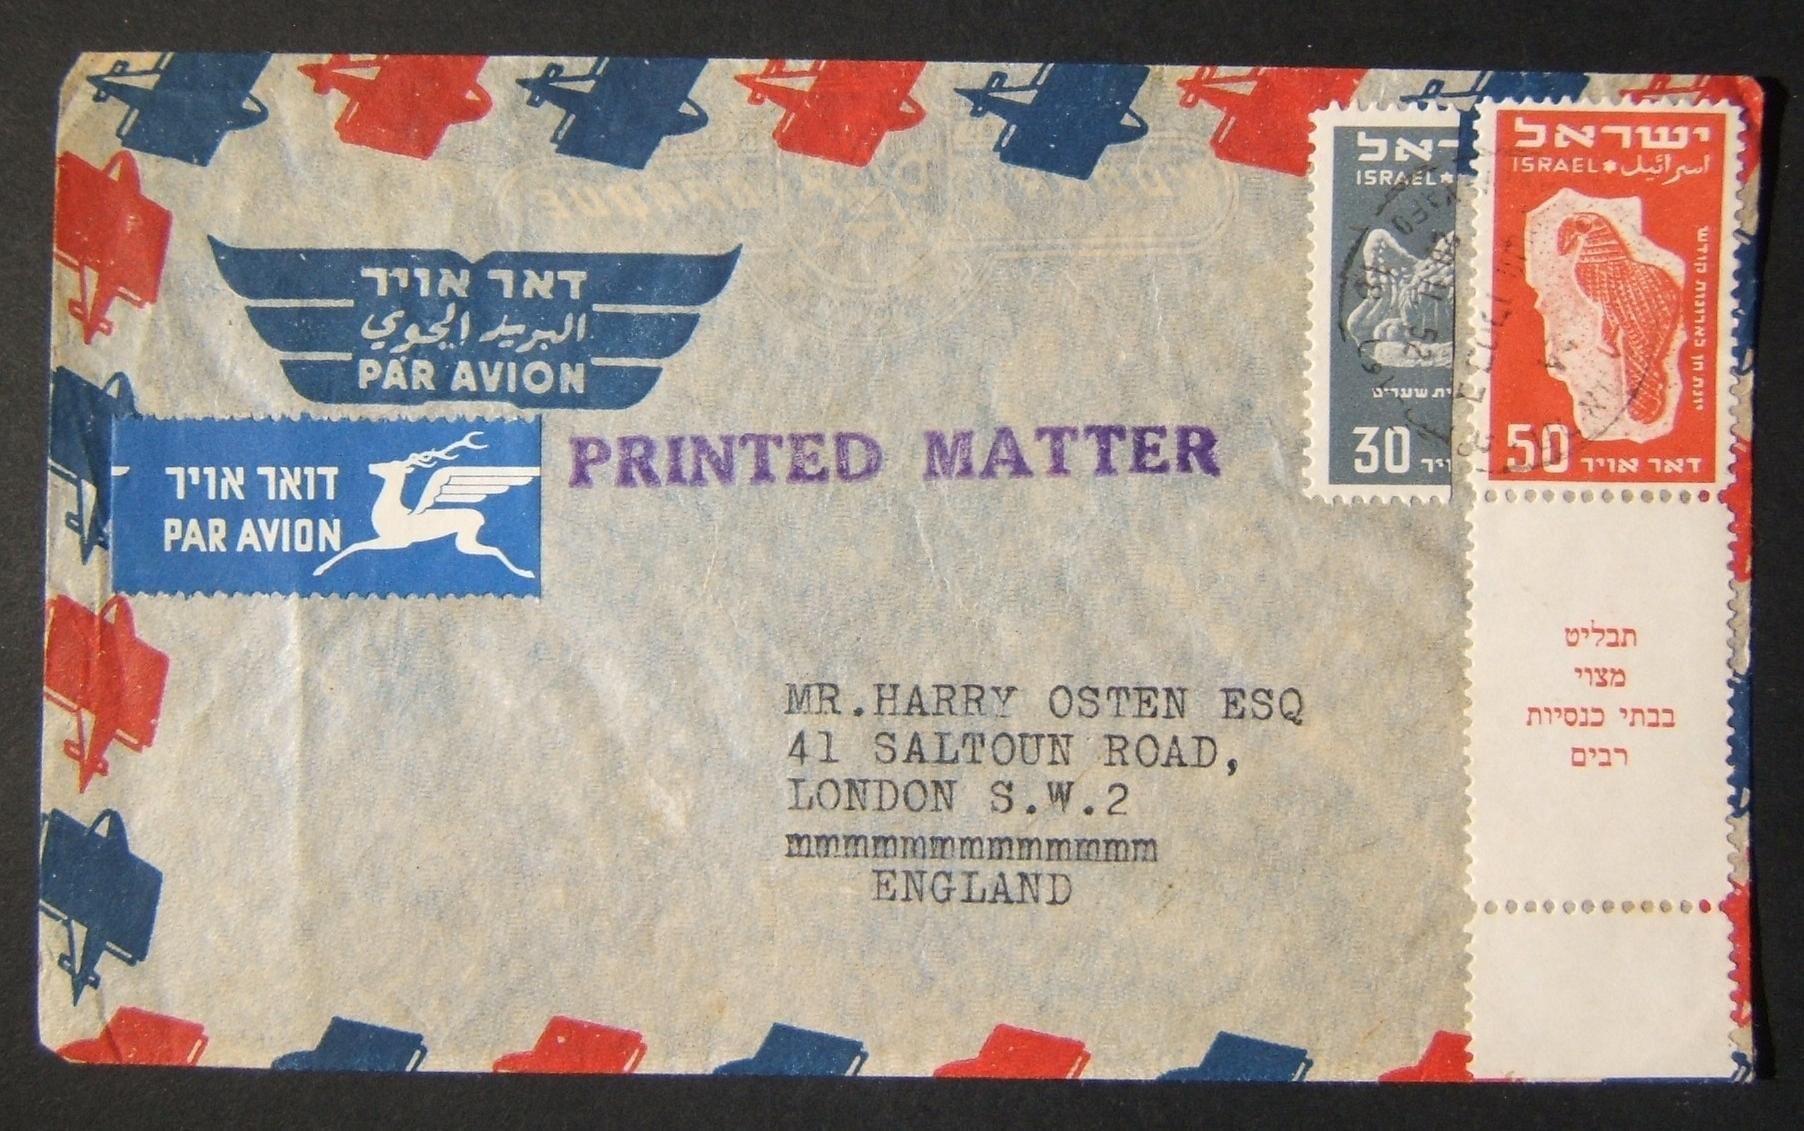 1950 1st airmail / PO's, rates & routes: 20-11-1952 Israeli airmail stationary printed matter cover ex TLV to LONDON franked 80pr - 10pr short of the FA-3a period pm rate - and not